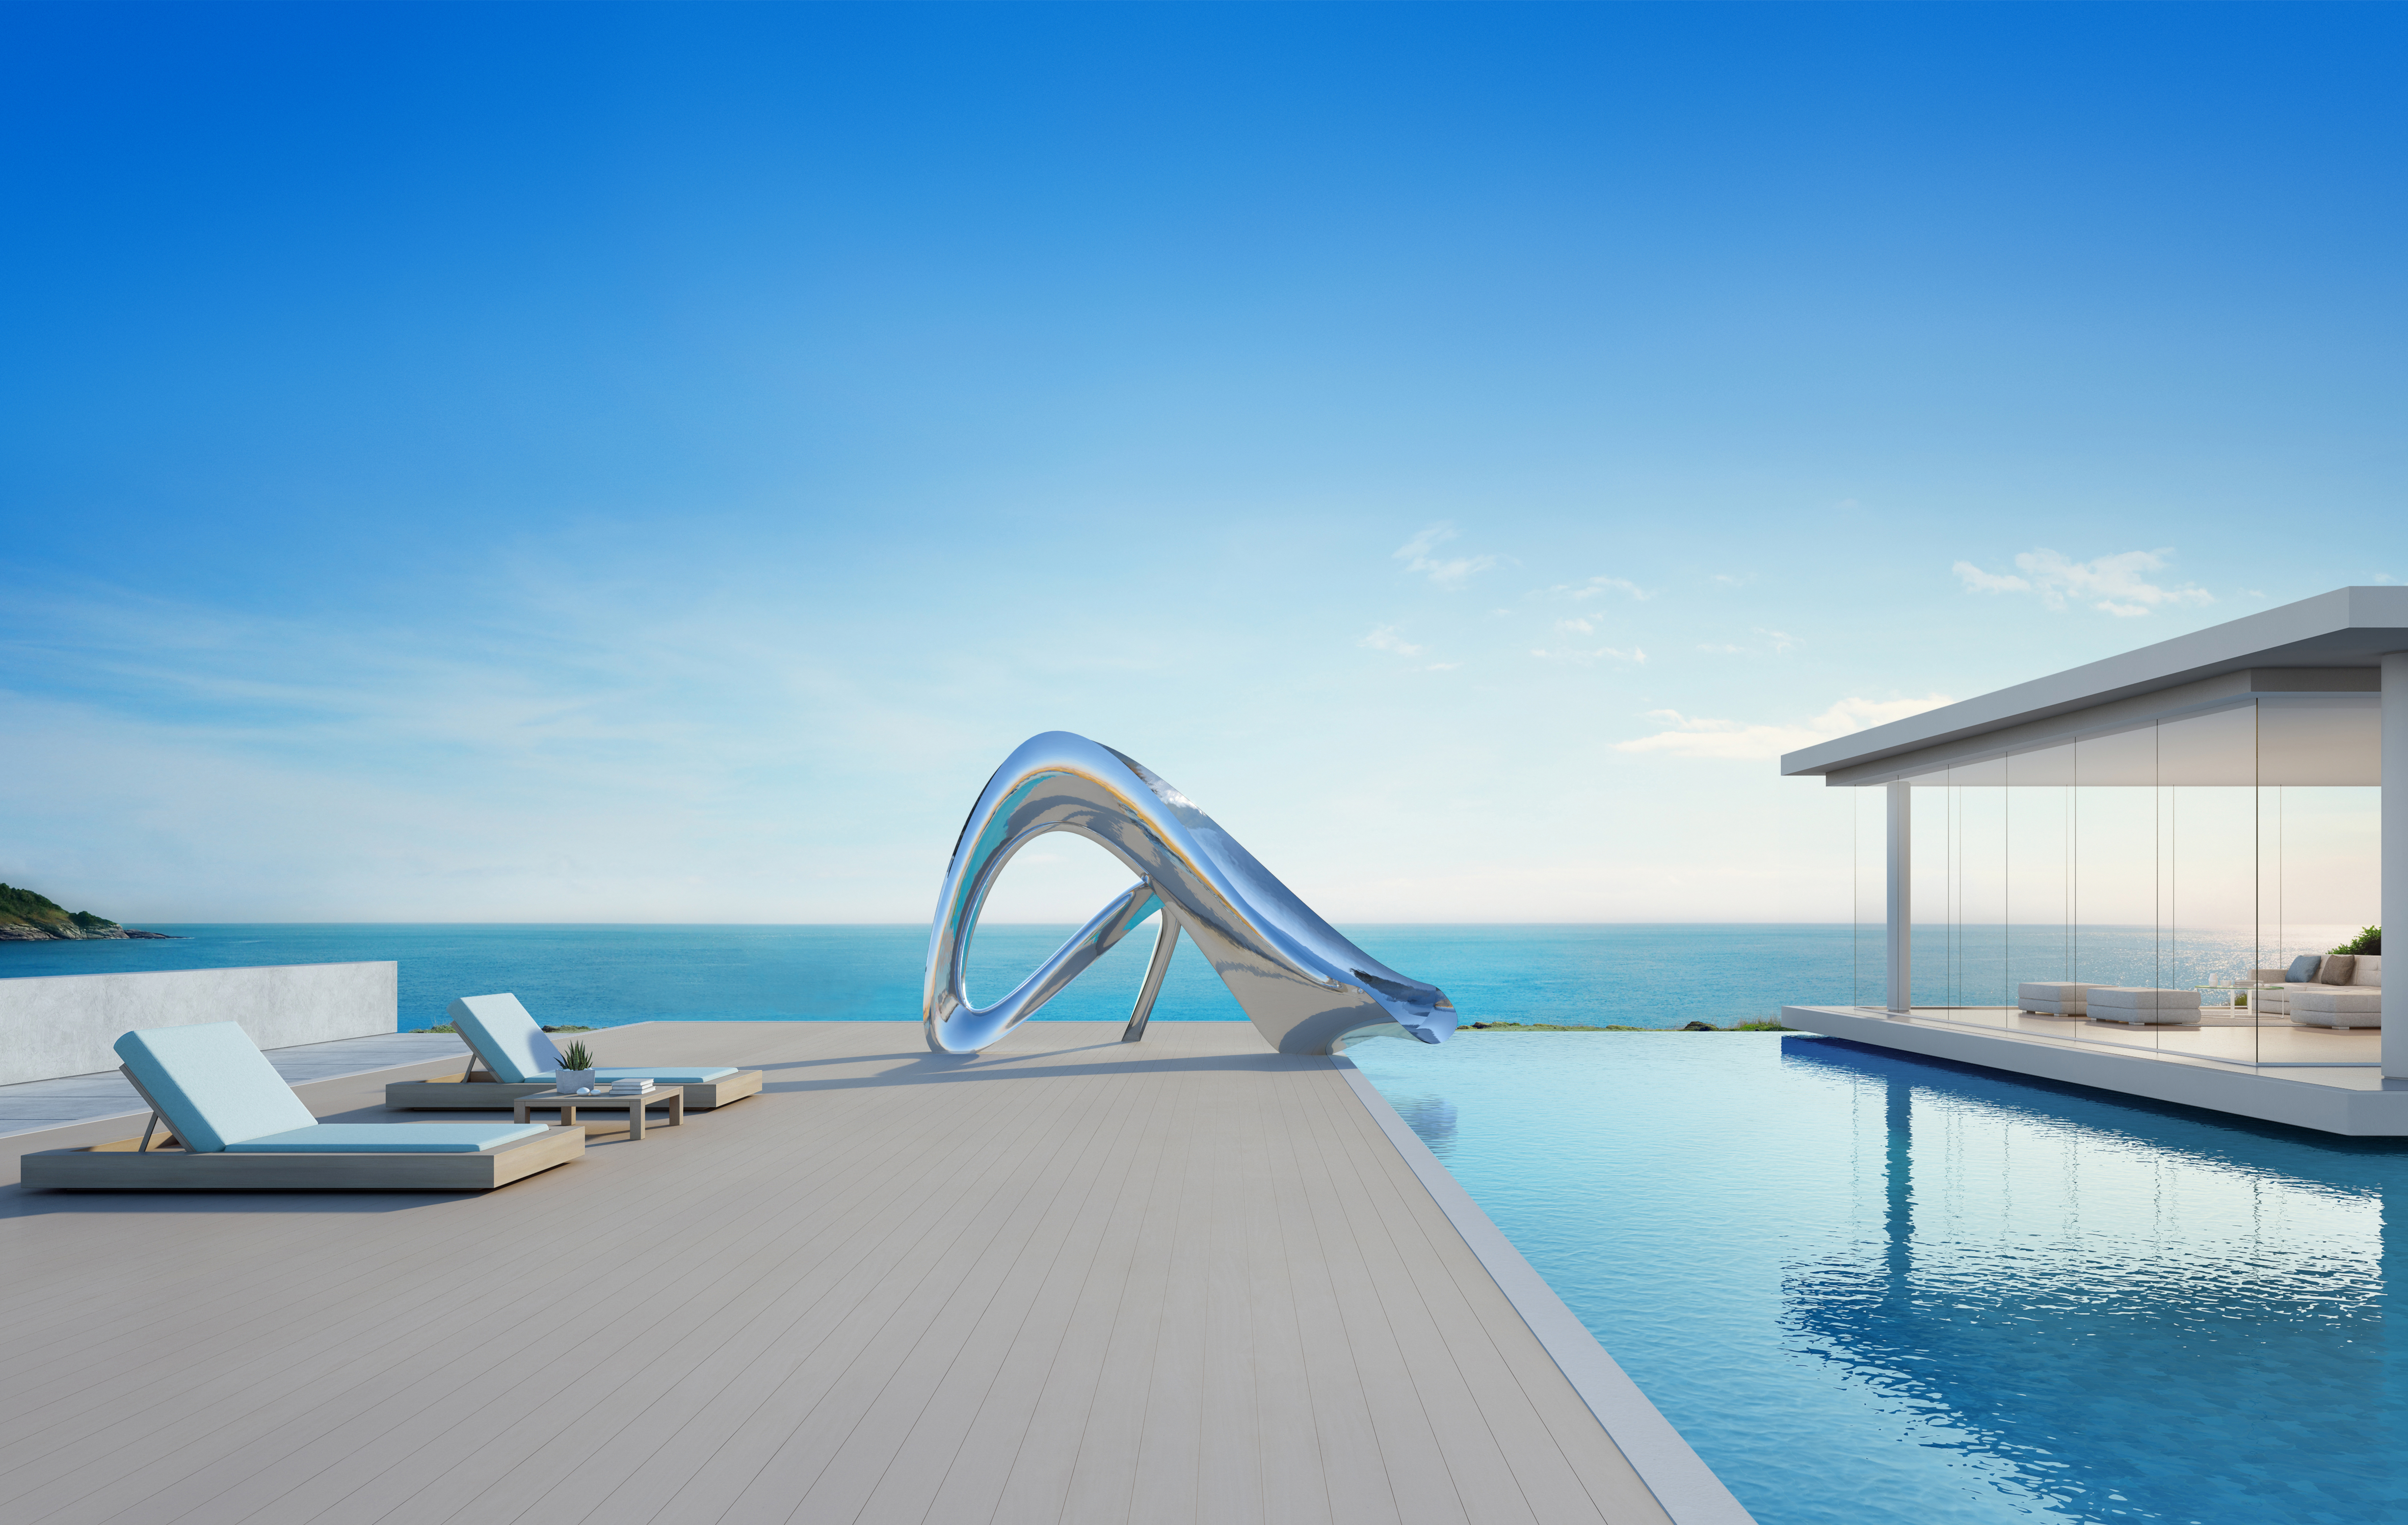 Sculptural pool side slide next to ocean view pool and modern house